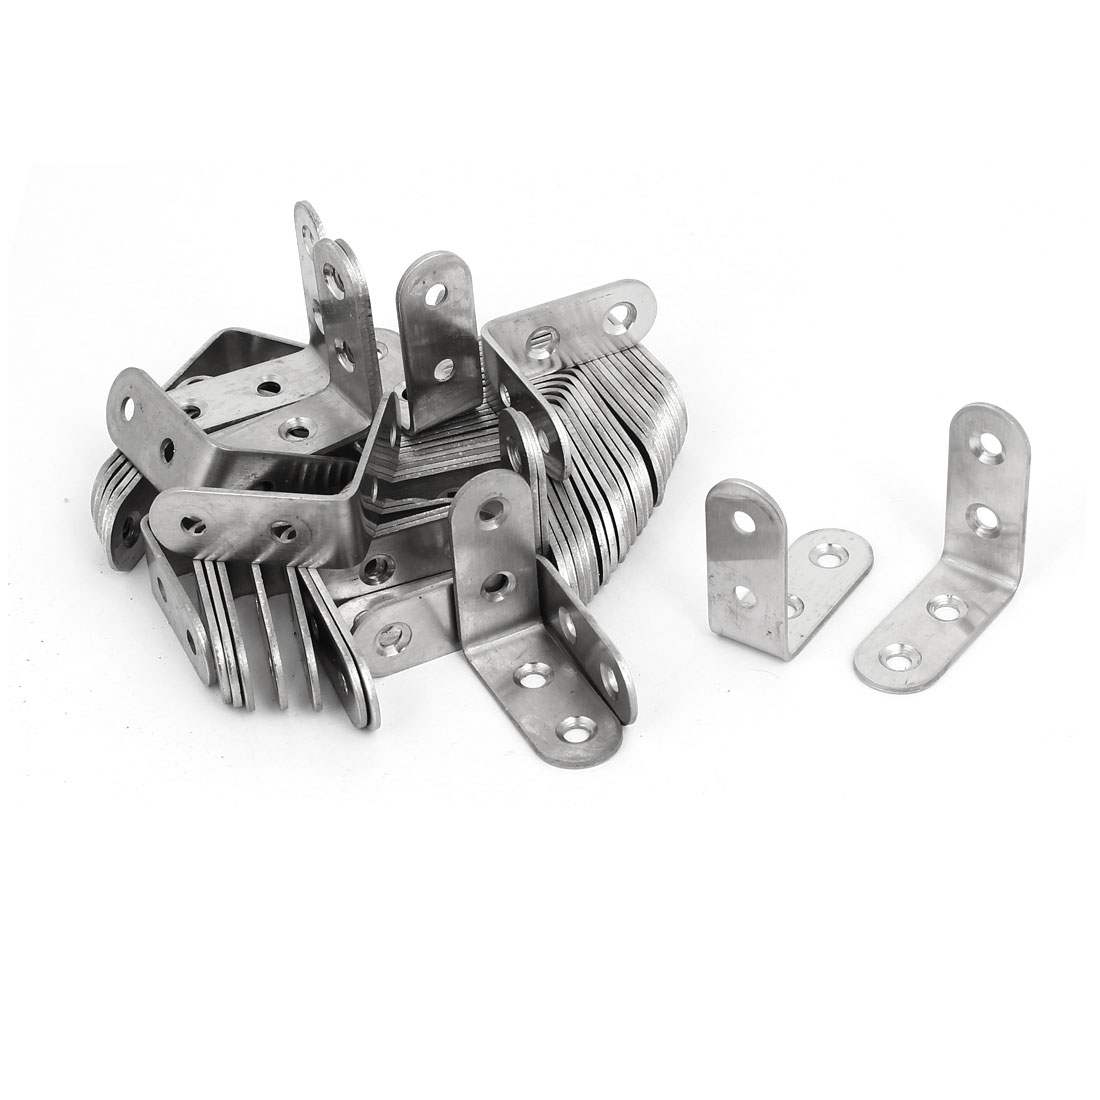 40mm Long Stainless Steel 90 Degree L Shaped Angle Bracket Brace Support 100pcs